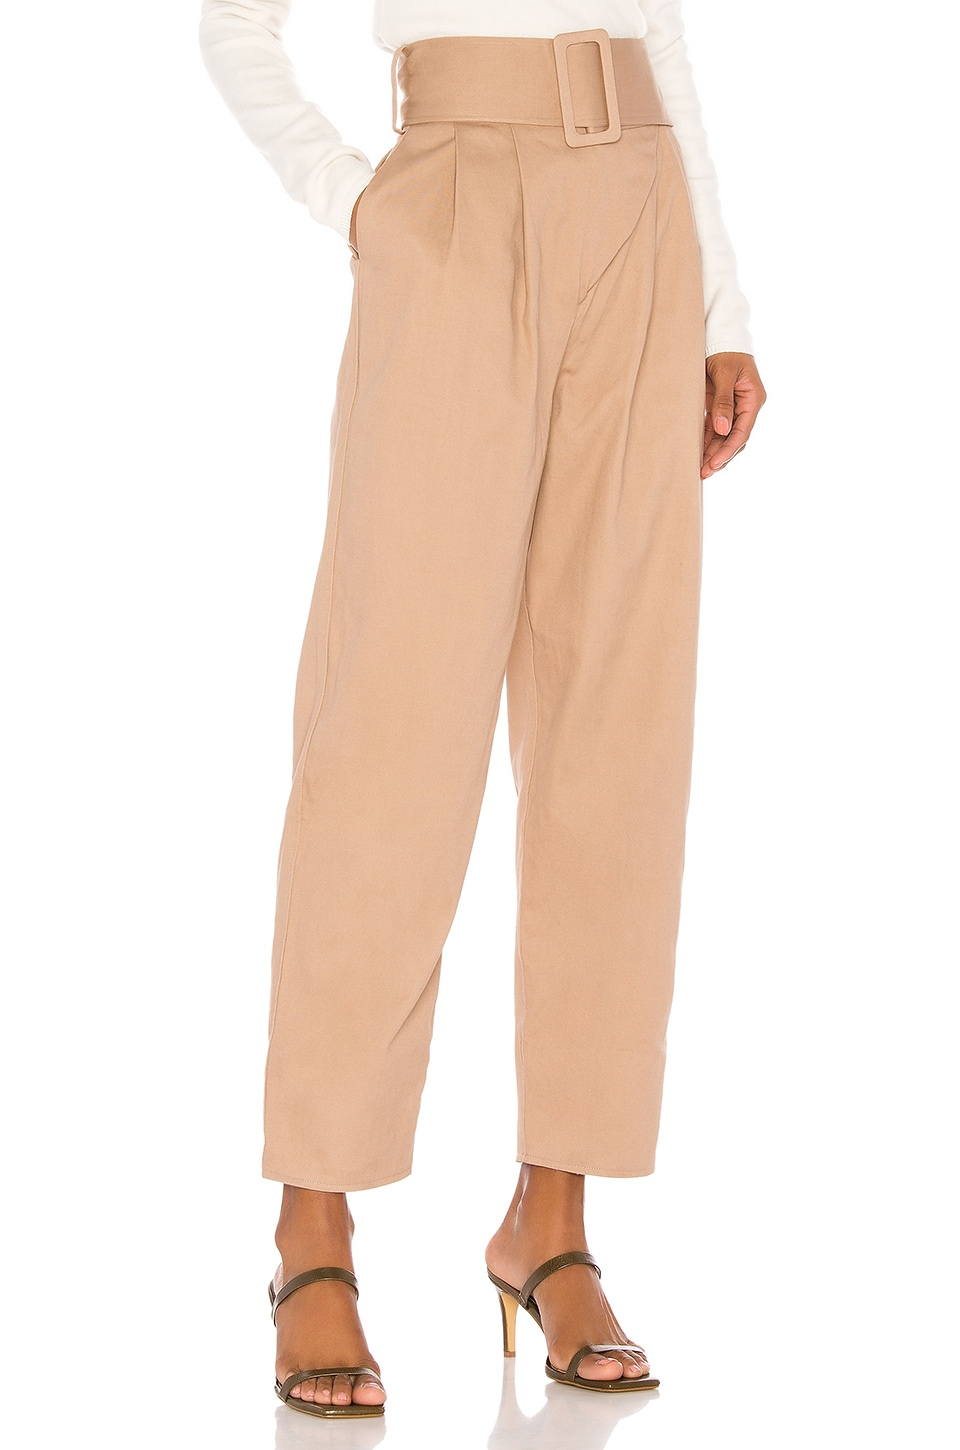 Song of Style Salem Pant in Nude Taupe